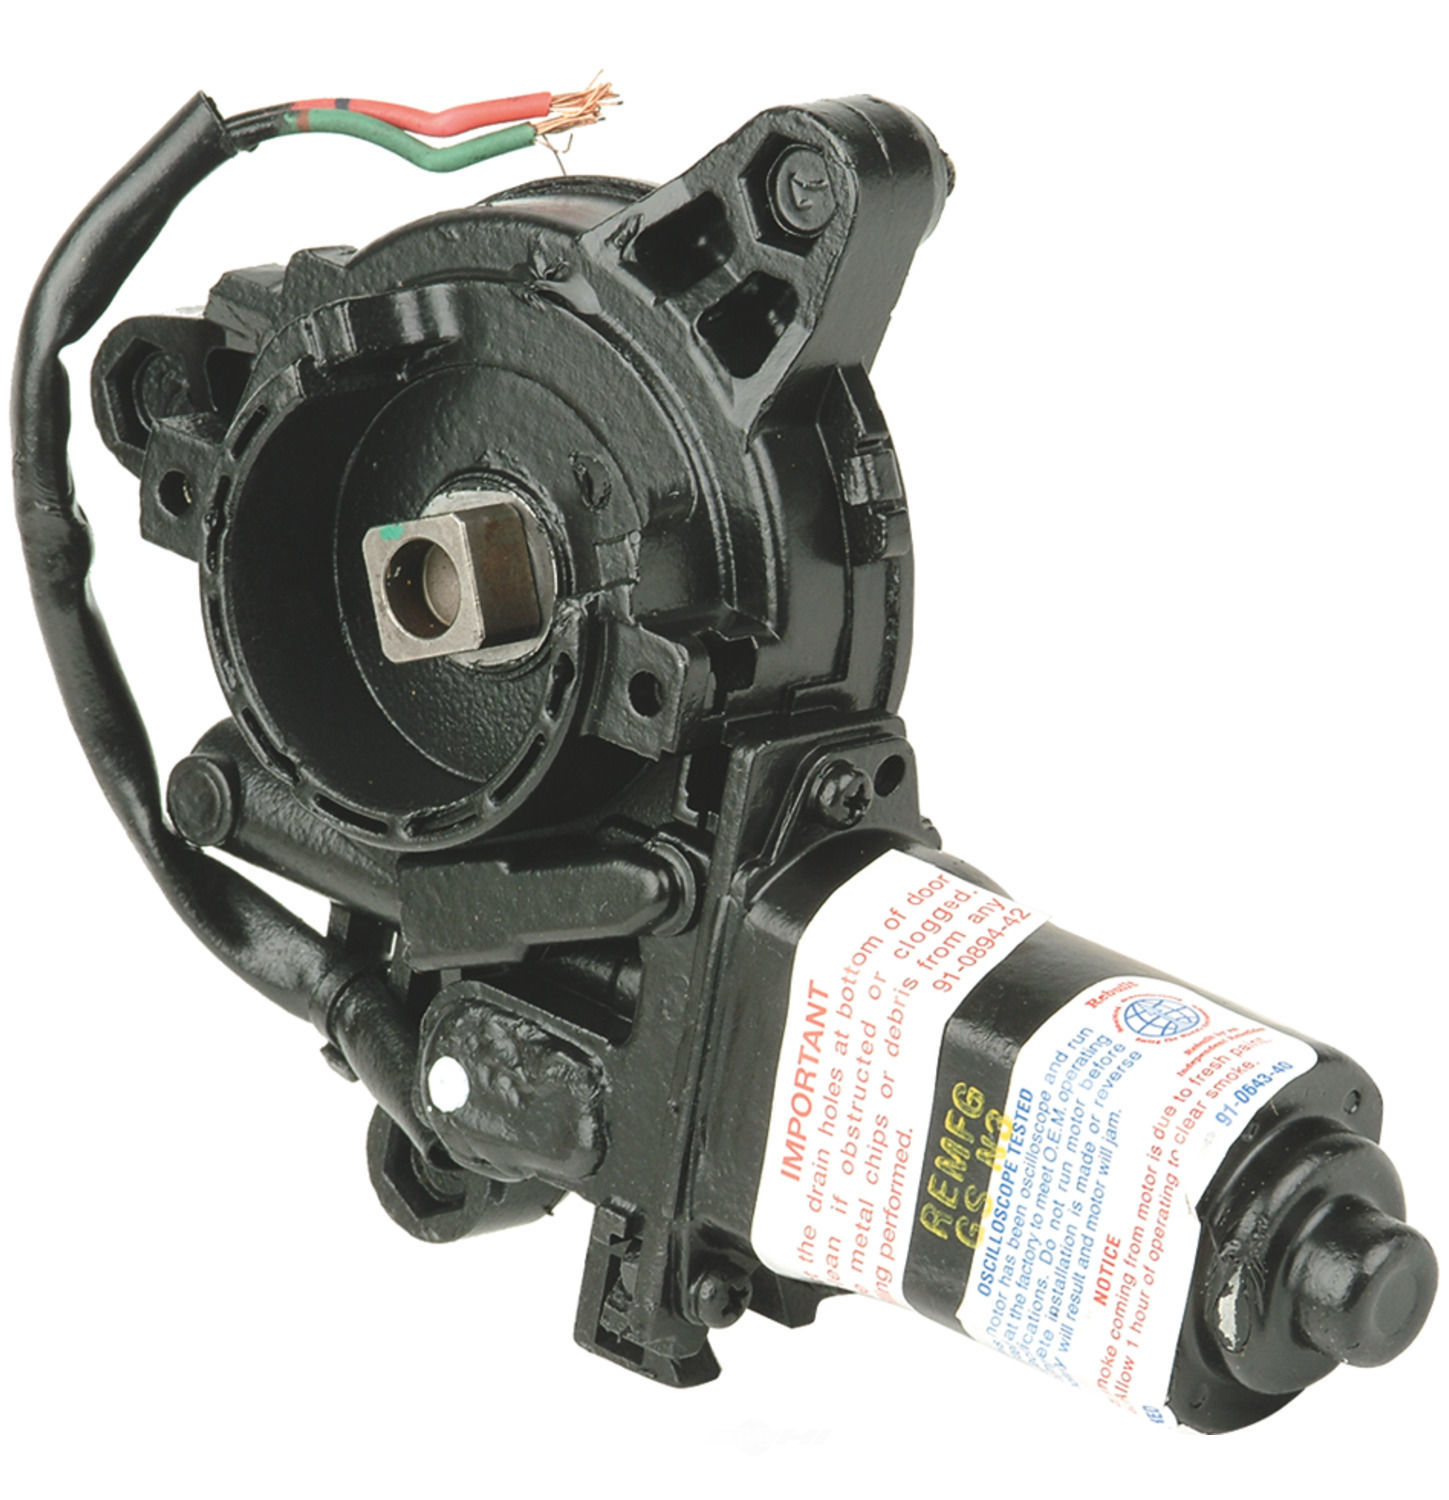 Used 2004 toyota mr2 spyder window motors parts for sale for Mr2 spyder interior accessories